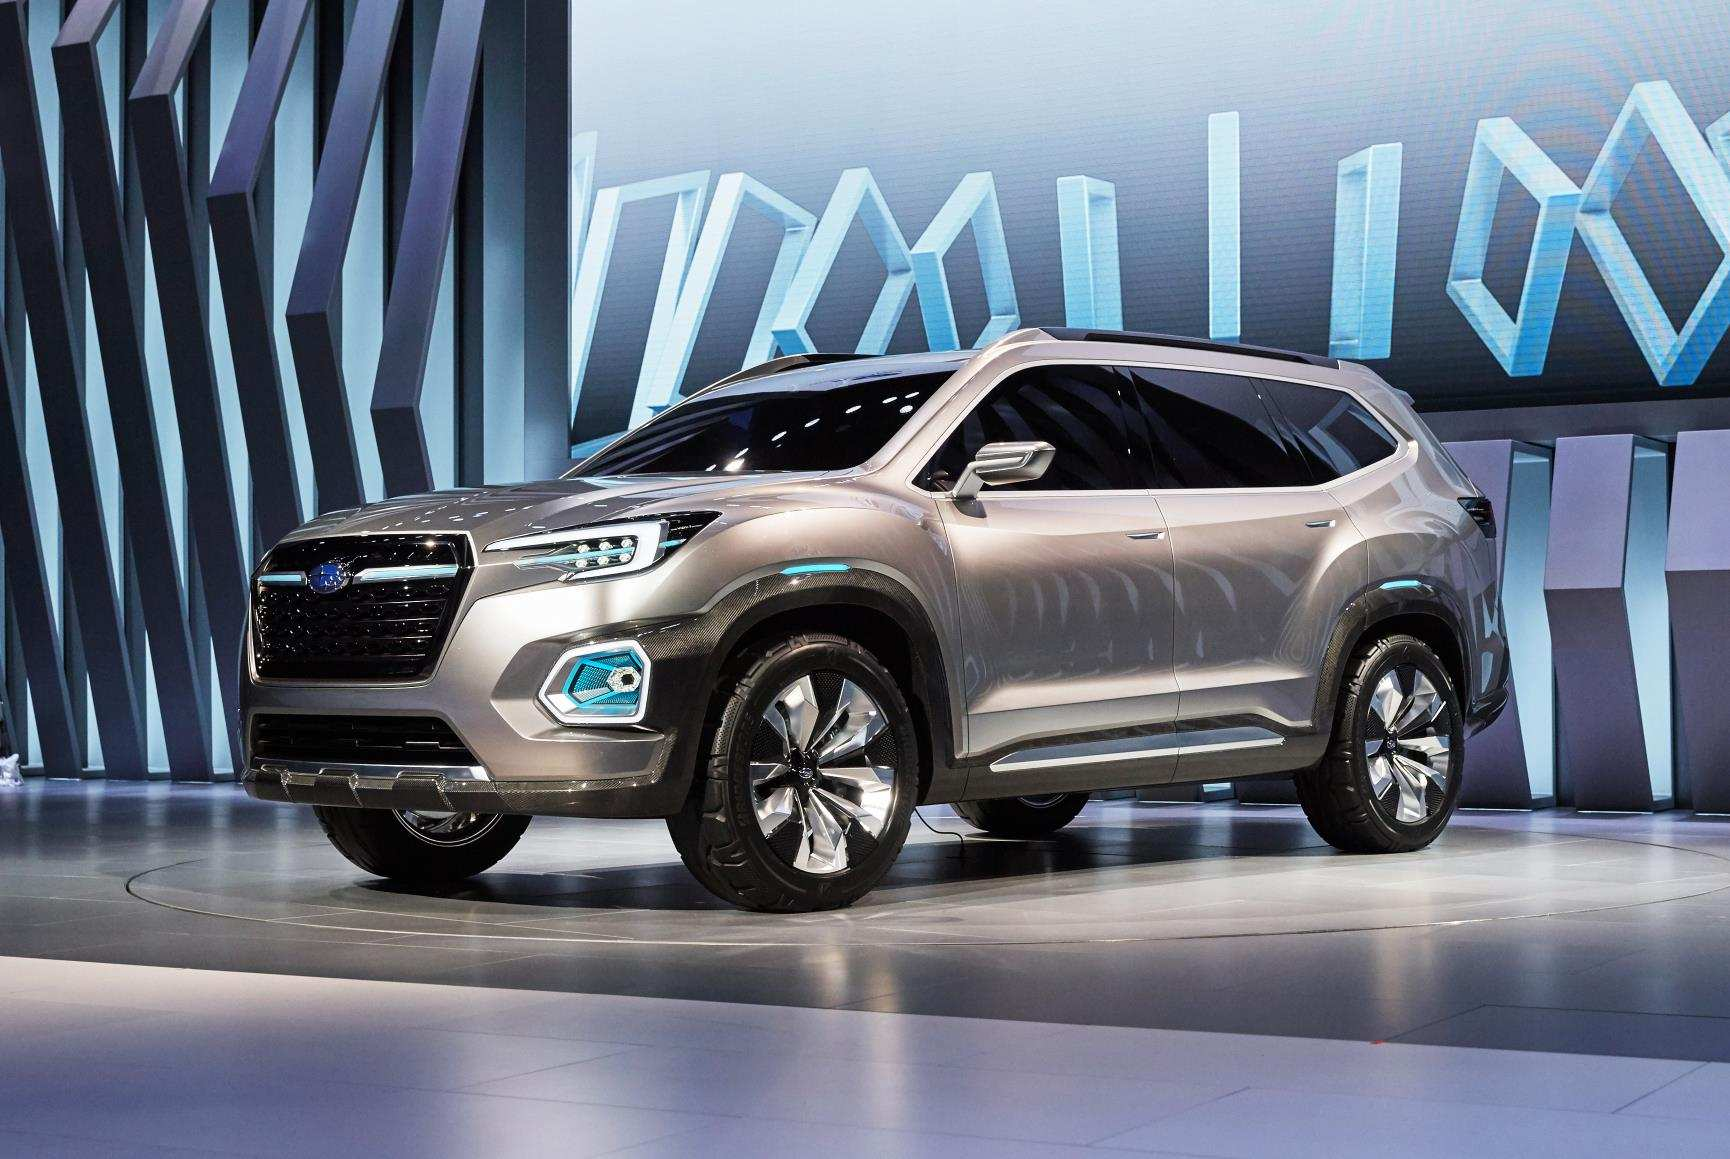 49 All New 2019 Subaru Tribeca Review And Release Date